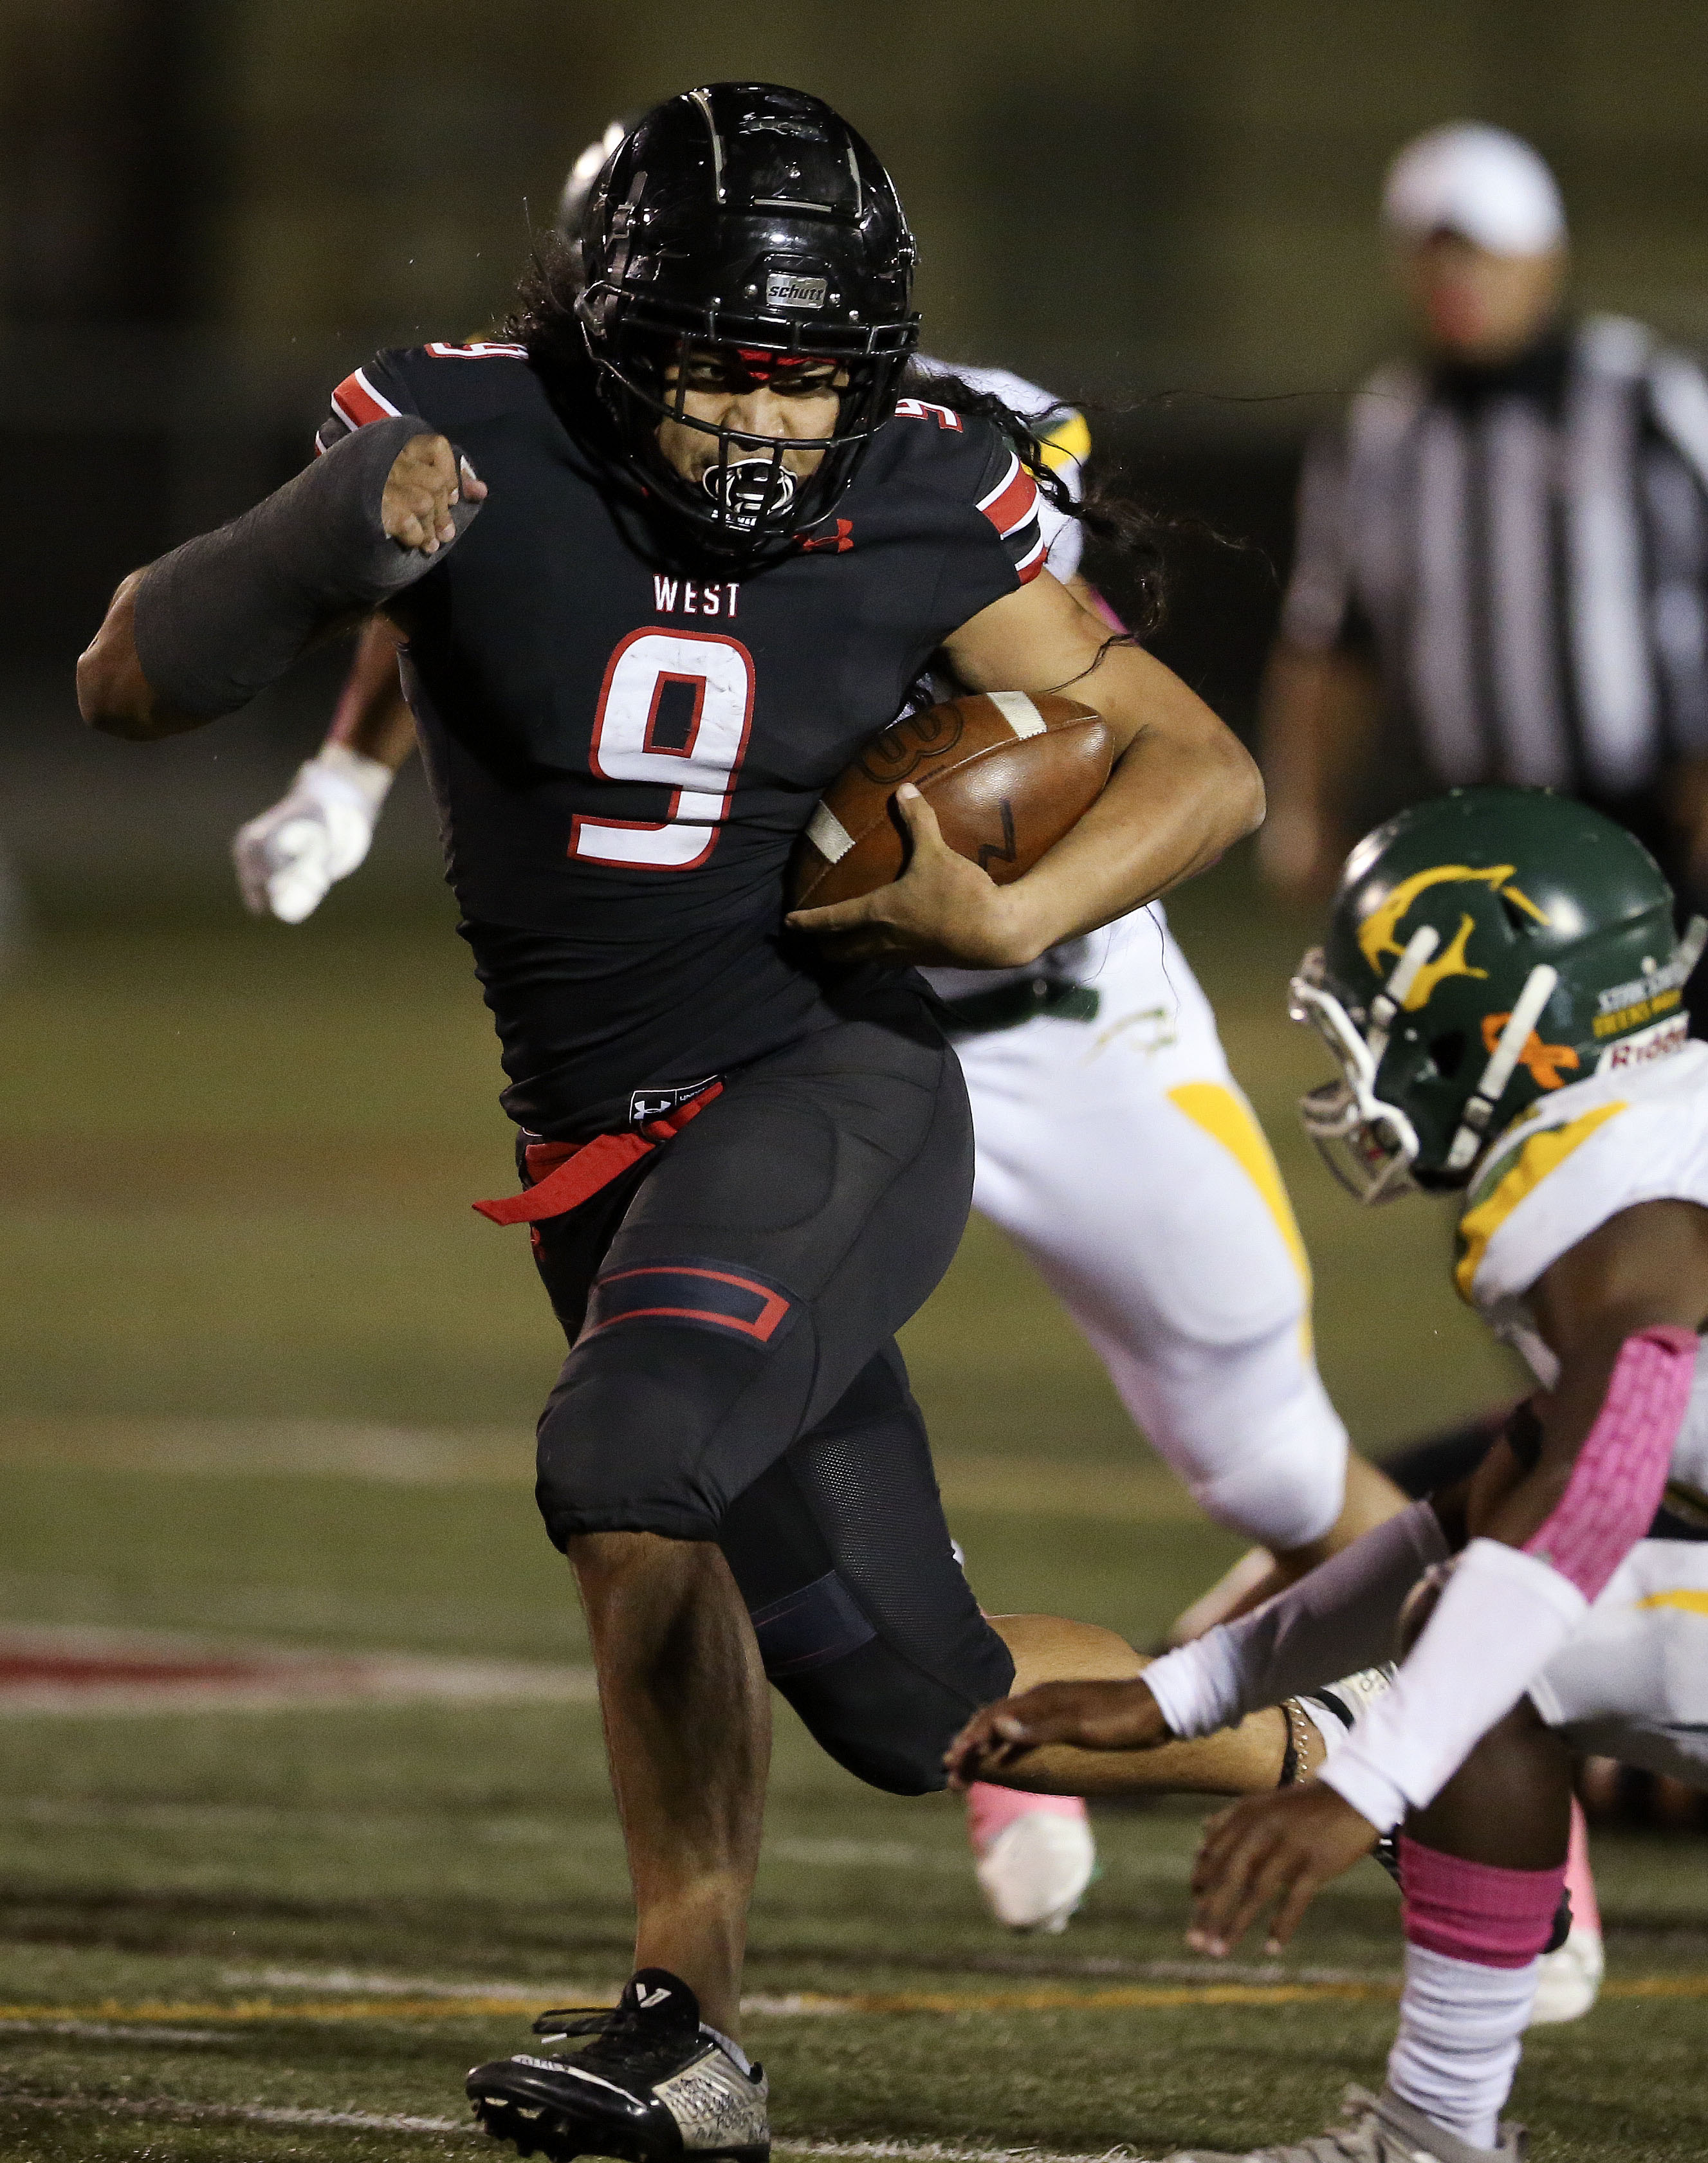 West High's Johnny Alo (9) gains yardage in the game against Kearns at West High School in Salt Lake City on Friday, Oct. 9, 2020.